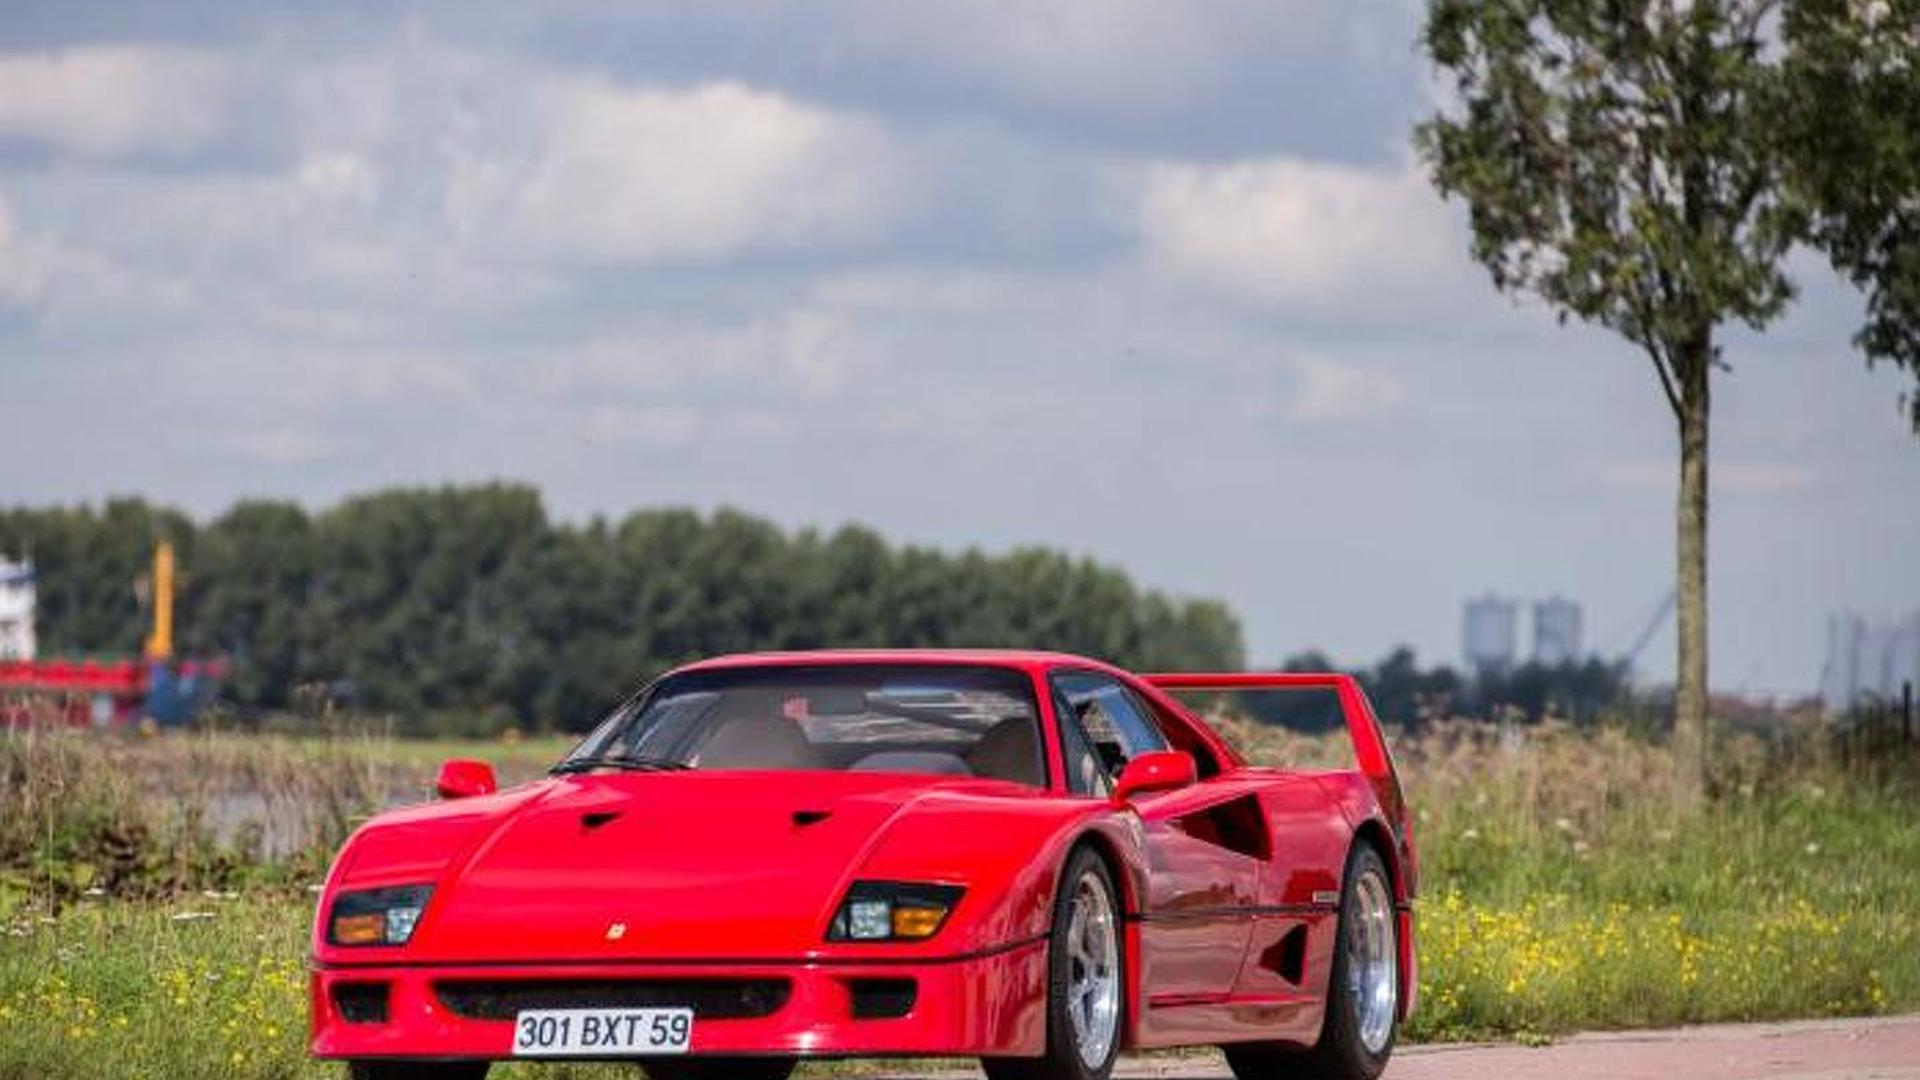 Ferrari f40 previously owned by nigel mansell sold for 690000 vanachro Image collections